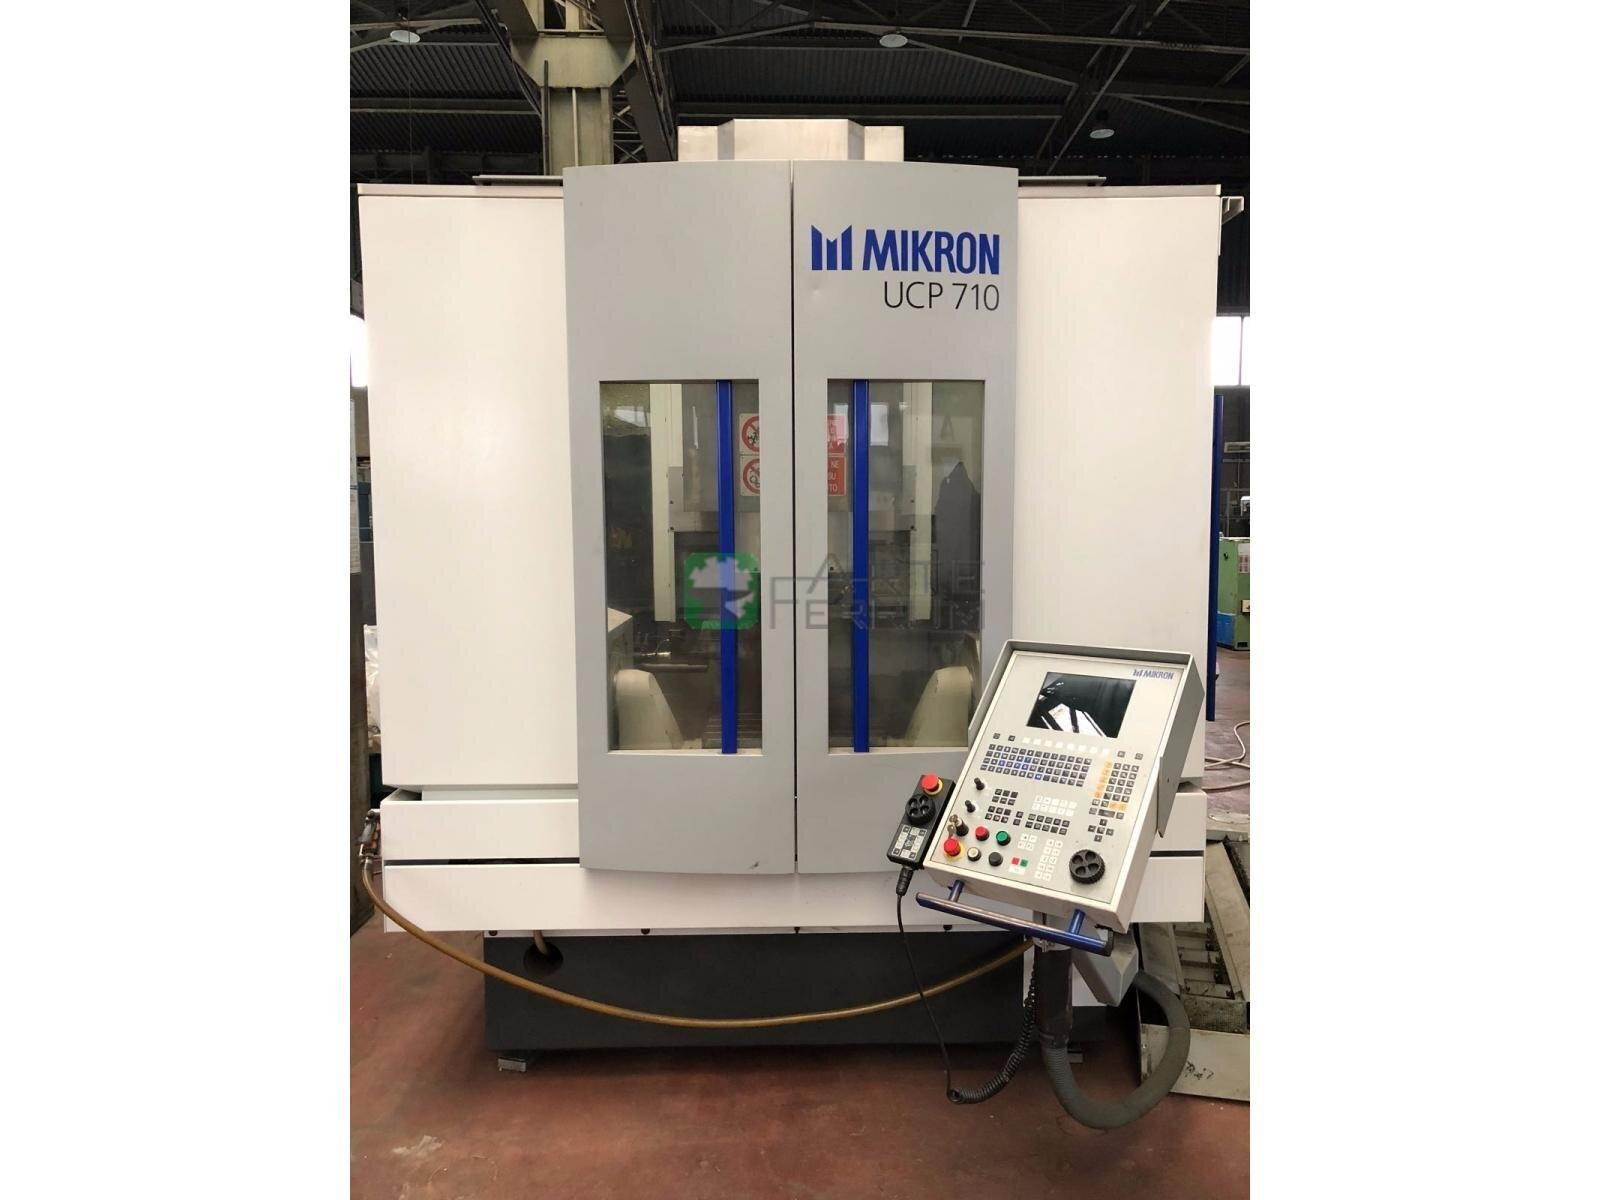 /en/mikron-710-ucp-vcp-5-axis-vertical-machining-center-detail